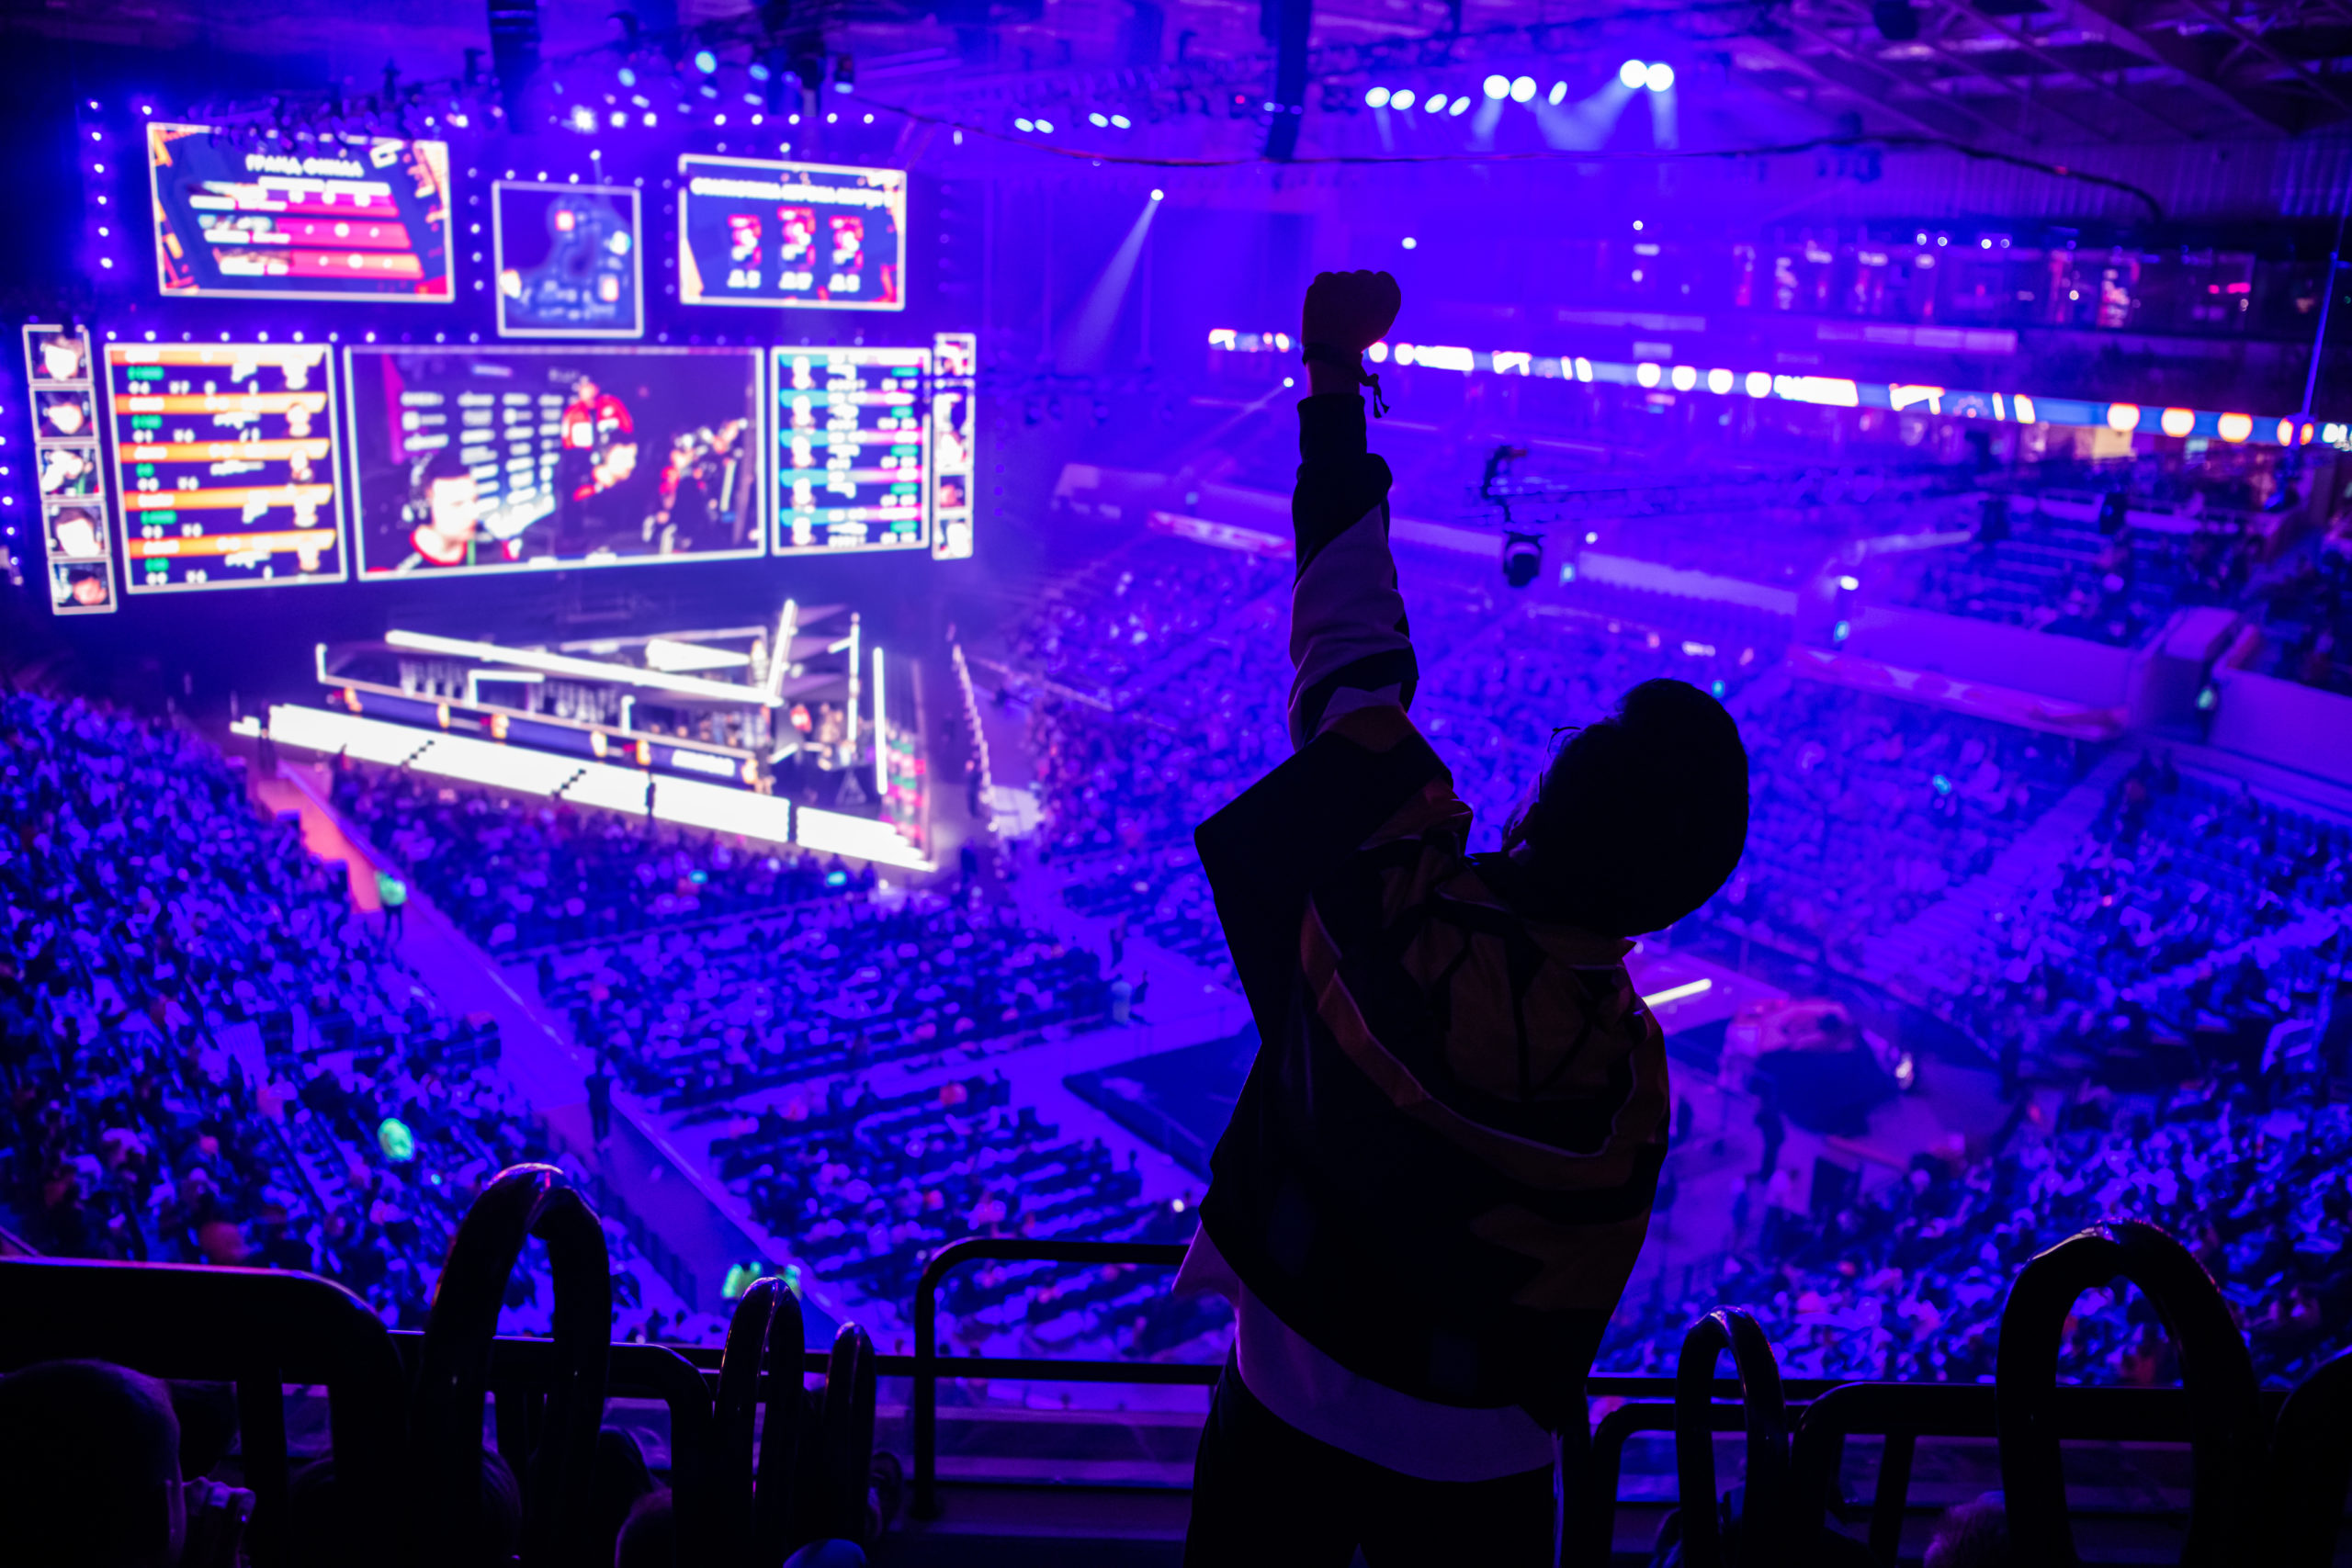 big esports event video games fan on a tribune at H7KAK7S scaled - The Best Gaming Events of 2020